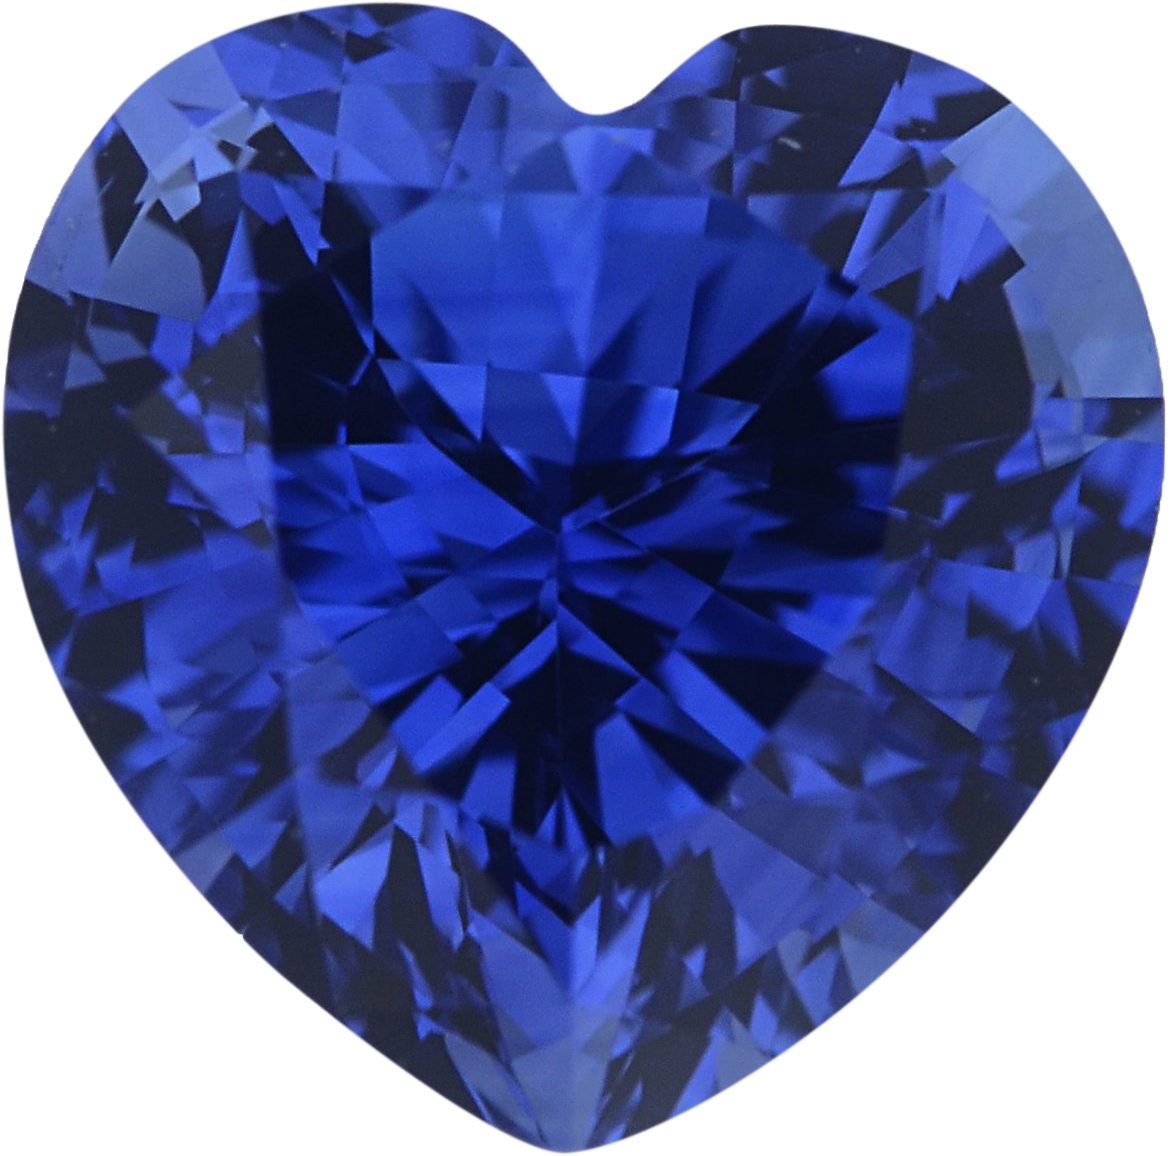 1.06 carats Blue Loose Sapphire Gemstone in Heart Cut, 6.03 x 6.03 mm